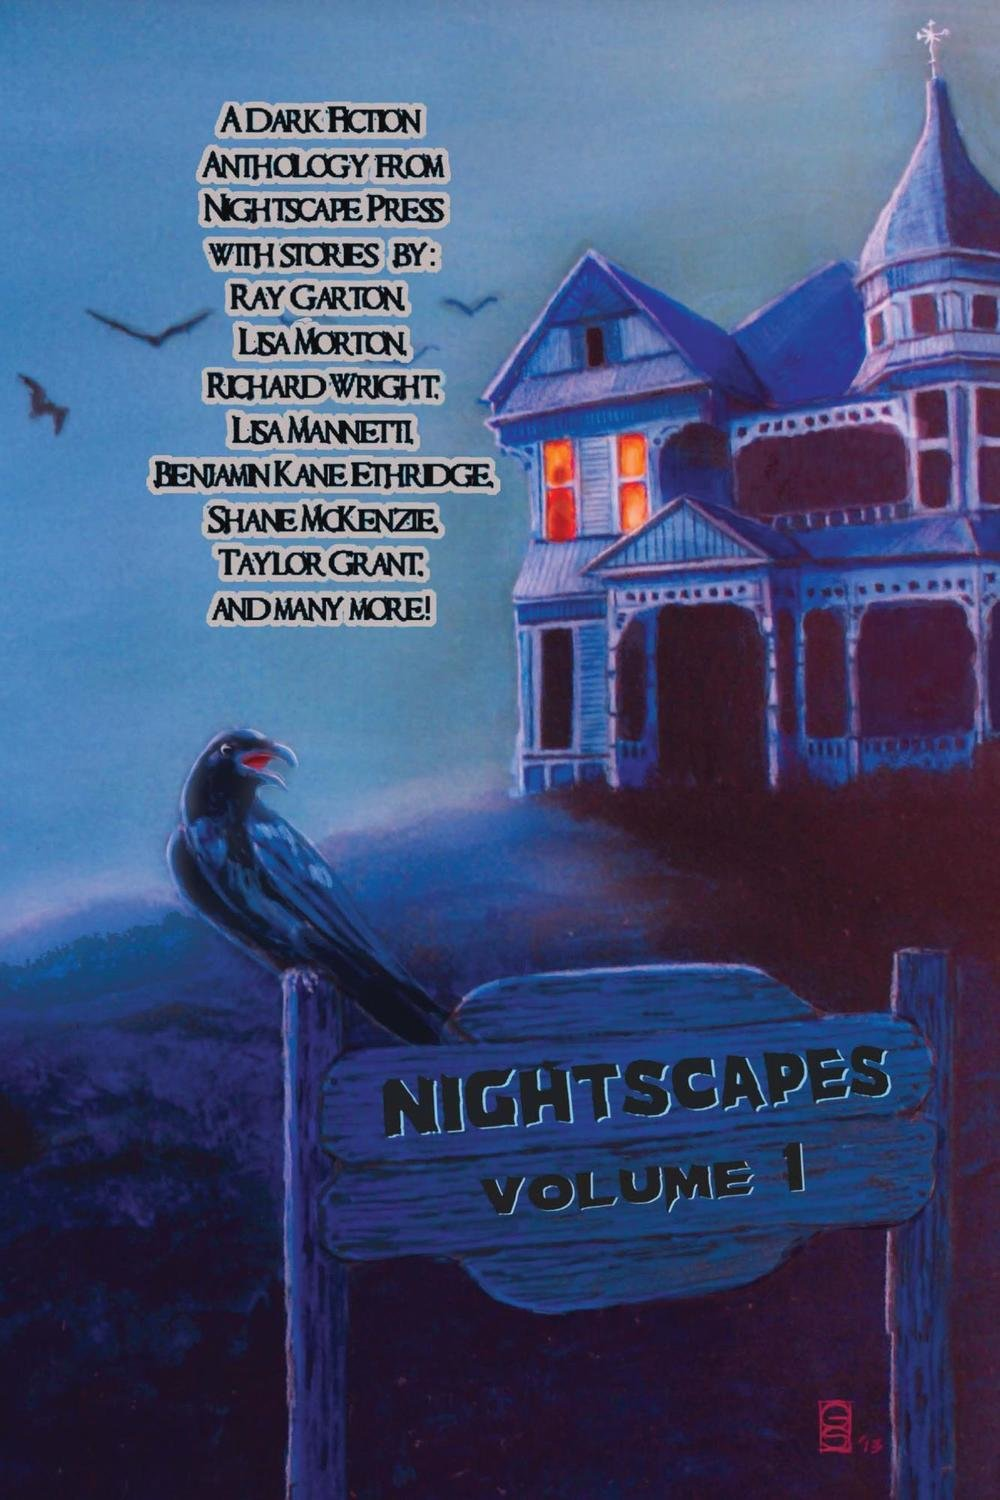 Nightscapes: Volume 1 edited by Jennifer Wilson, Robert S. Wilson, and Mark C. Scioneaux